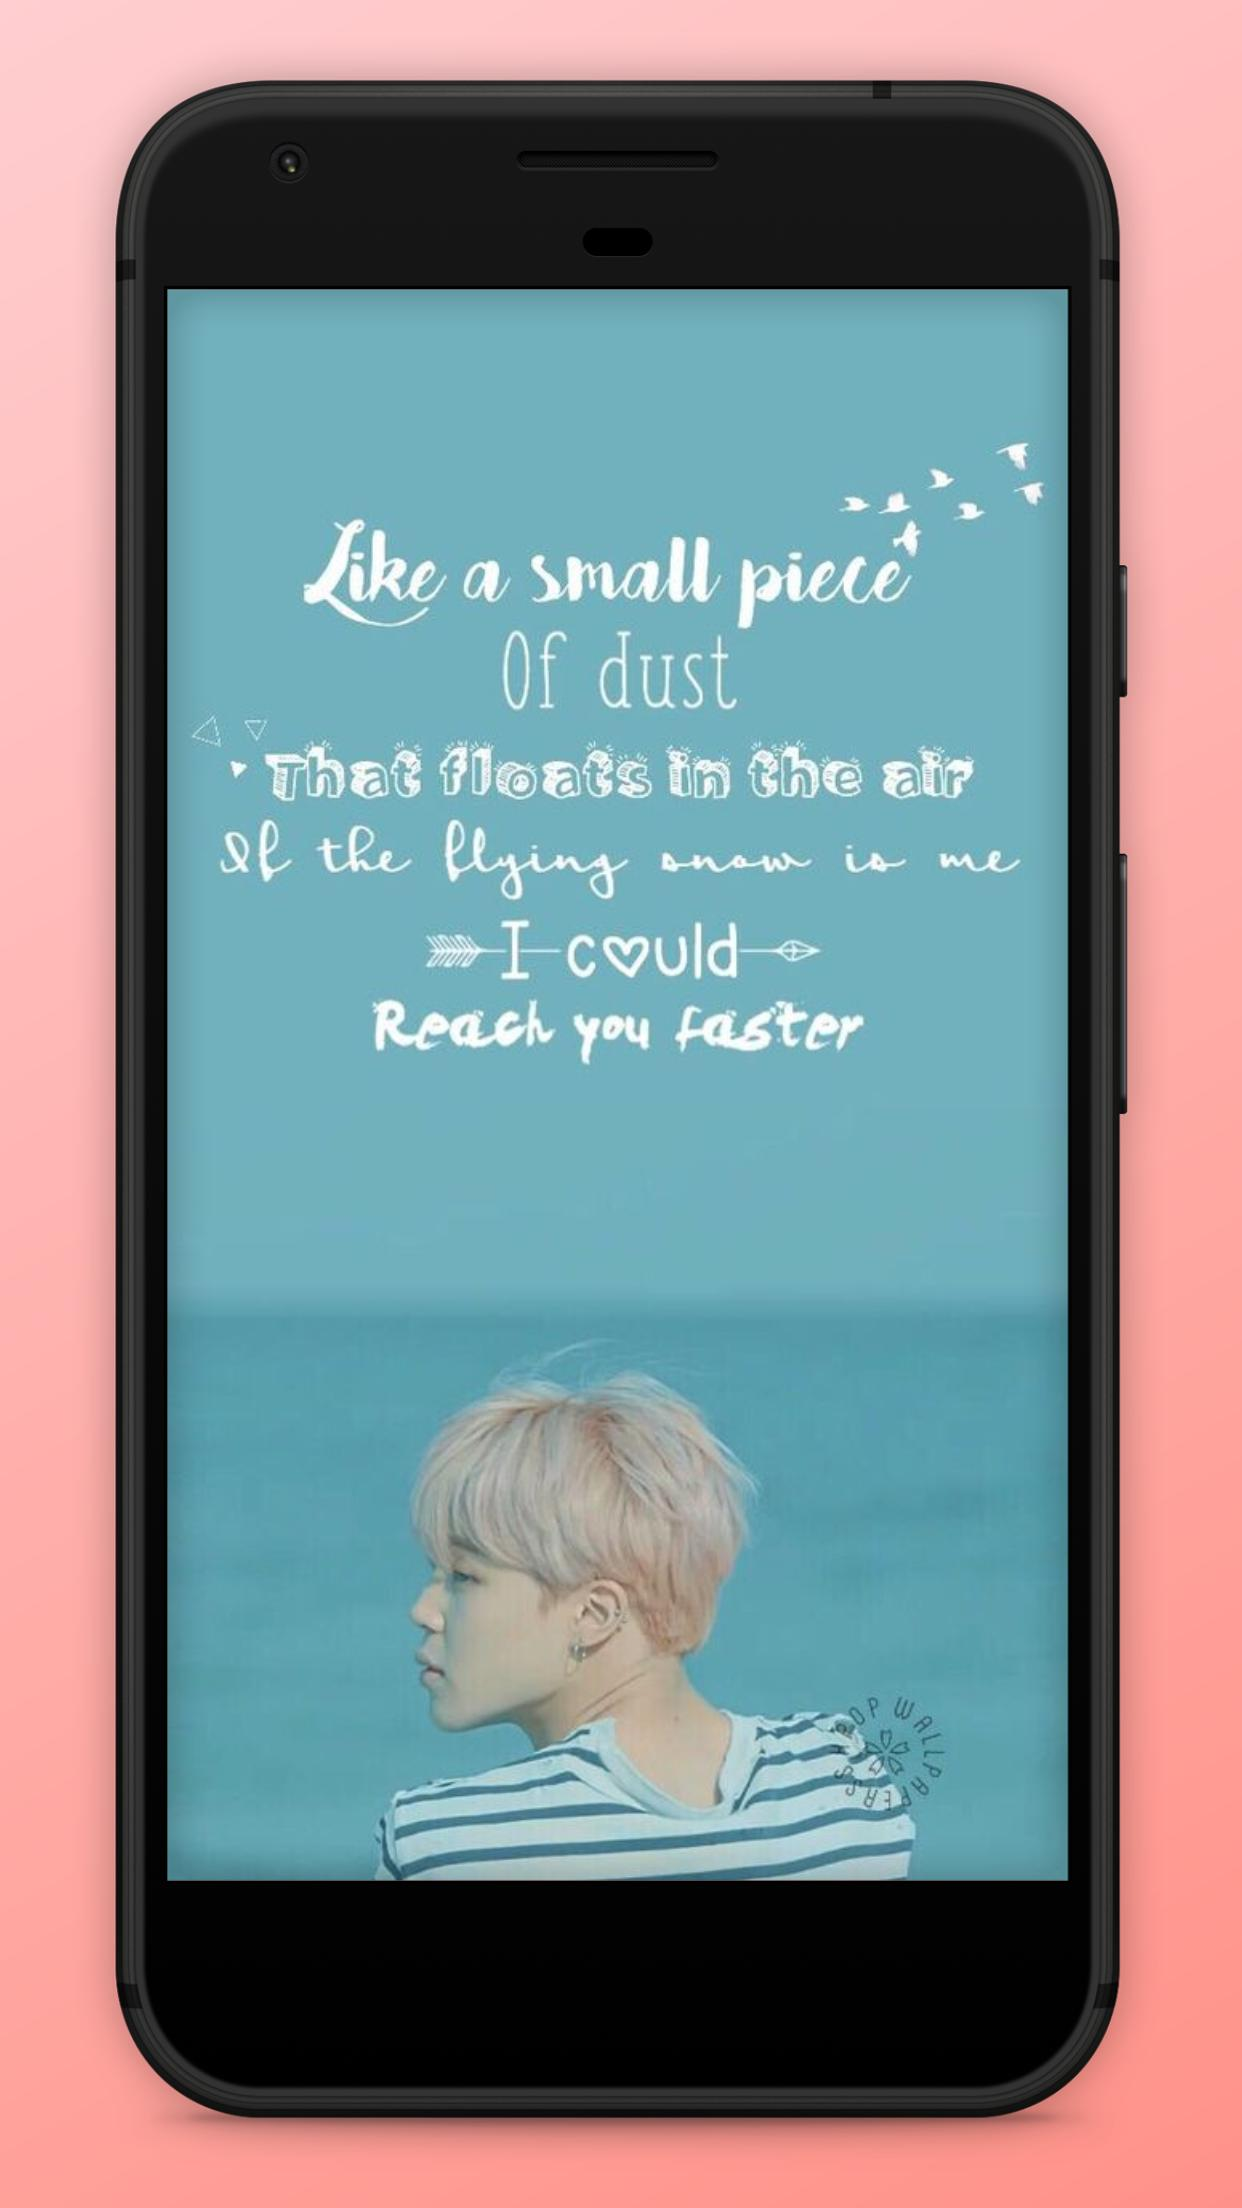 Bts Quotes Wallpapers For Android Apk Download